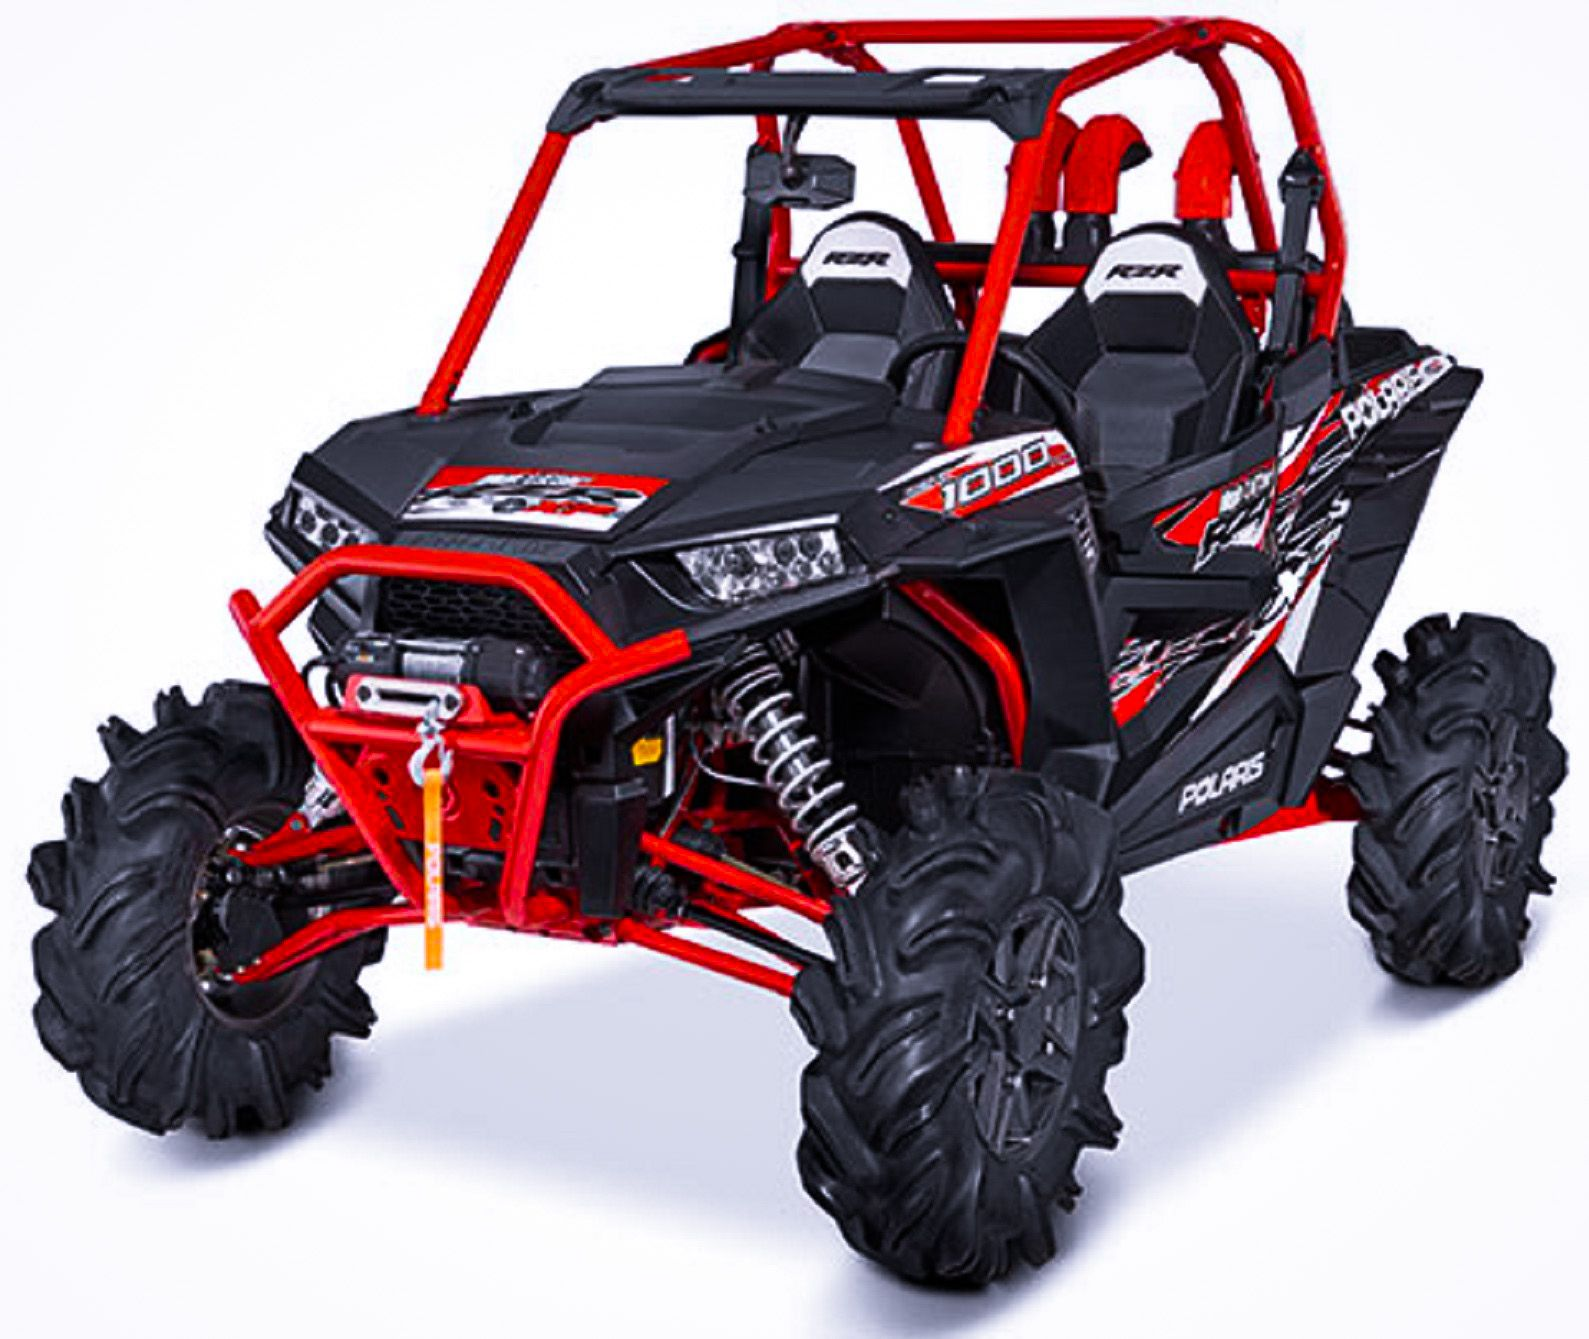 2016 polaris rzr xp 1000 eps high lifter edition. Black Bedroom Furniture Sets. Home Design Ideas